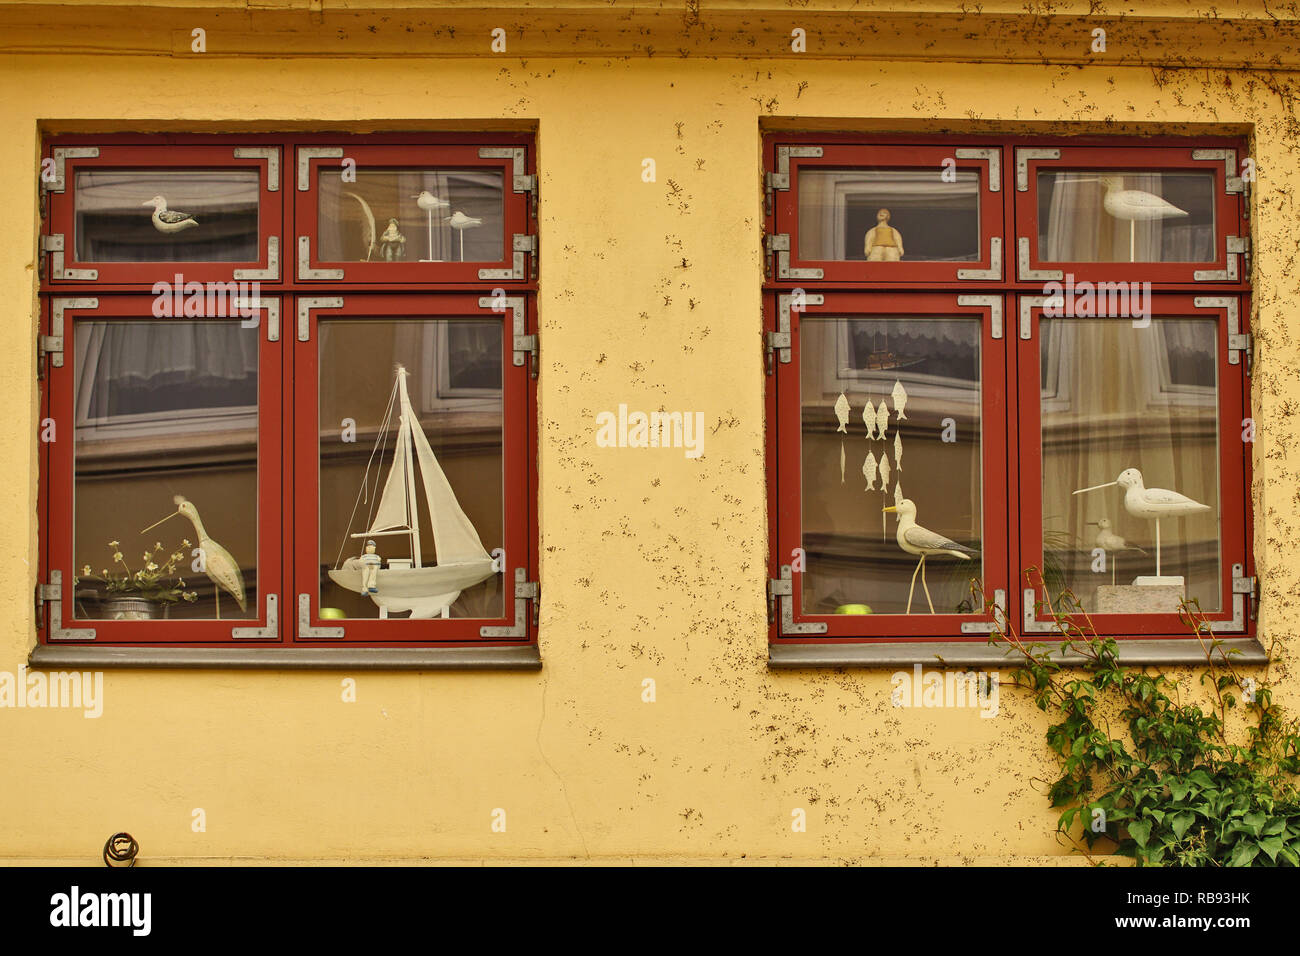 two windows with maritime decoration - Stock Image